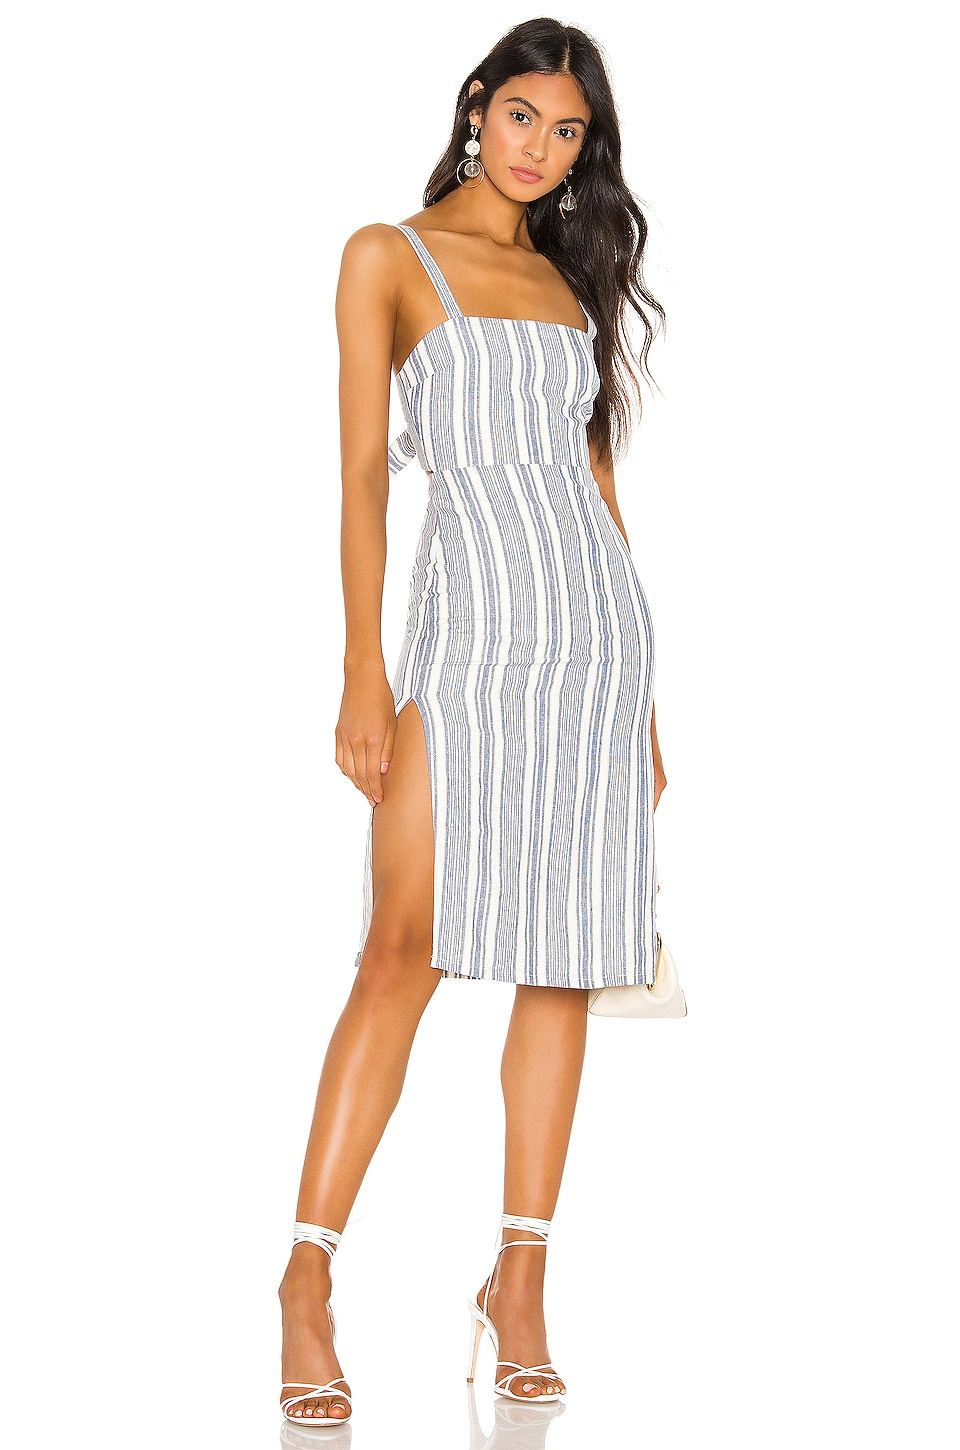 Privacy Please Josie Midi Dress in Blue Chambray Stripe